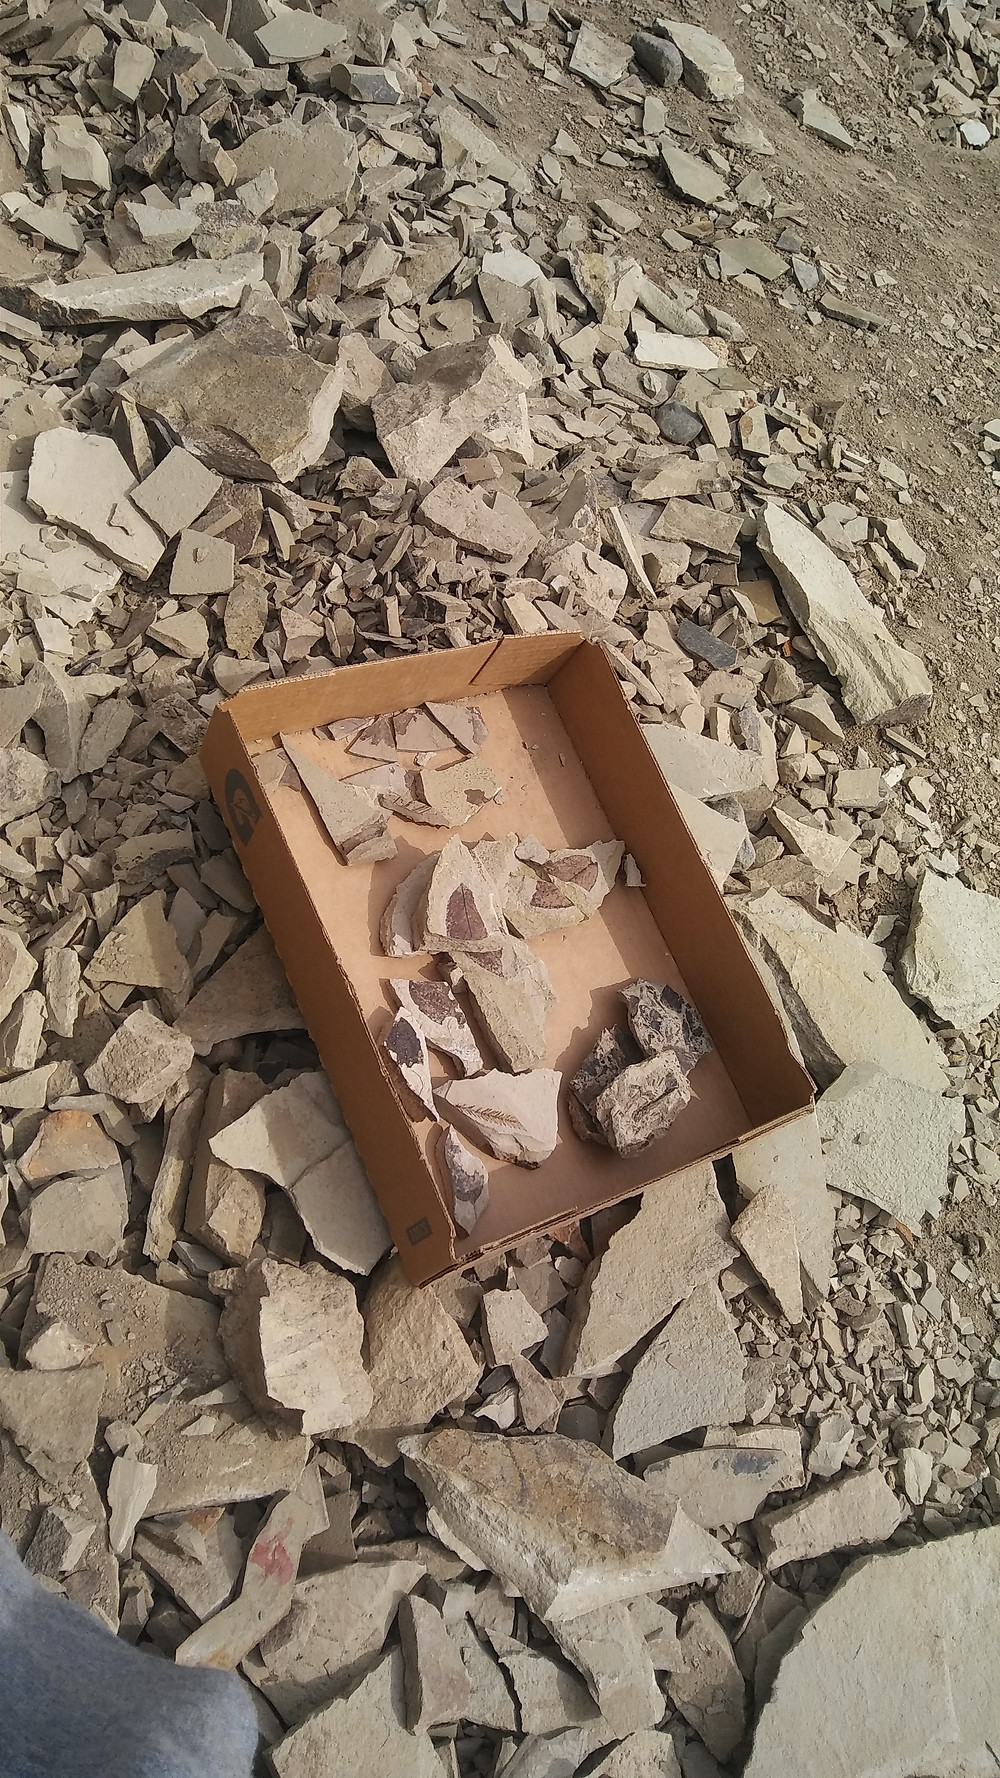 Figure 5: Collection box of assorted and fragmented finds.